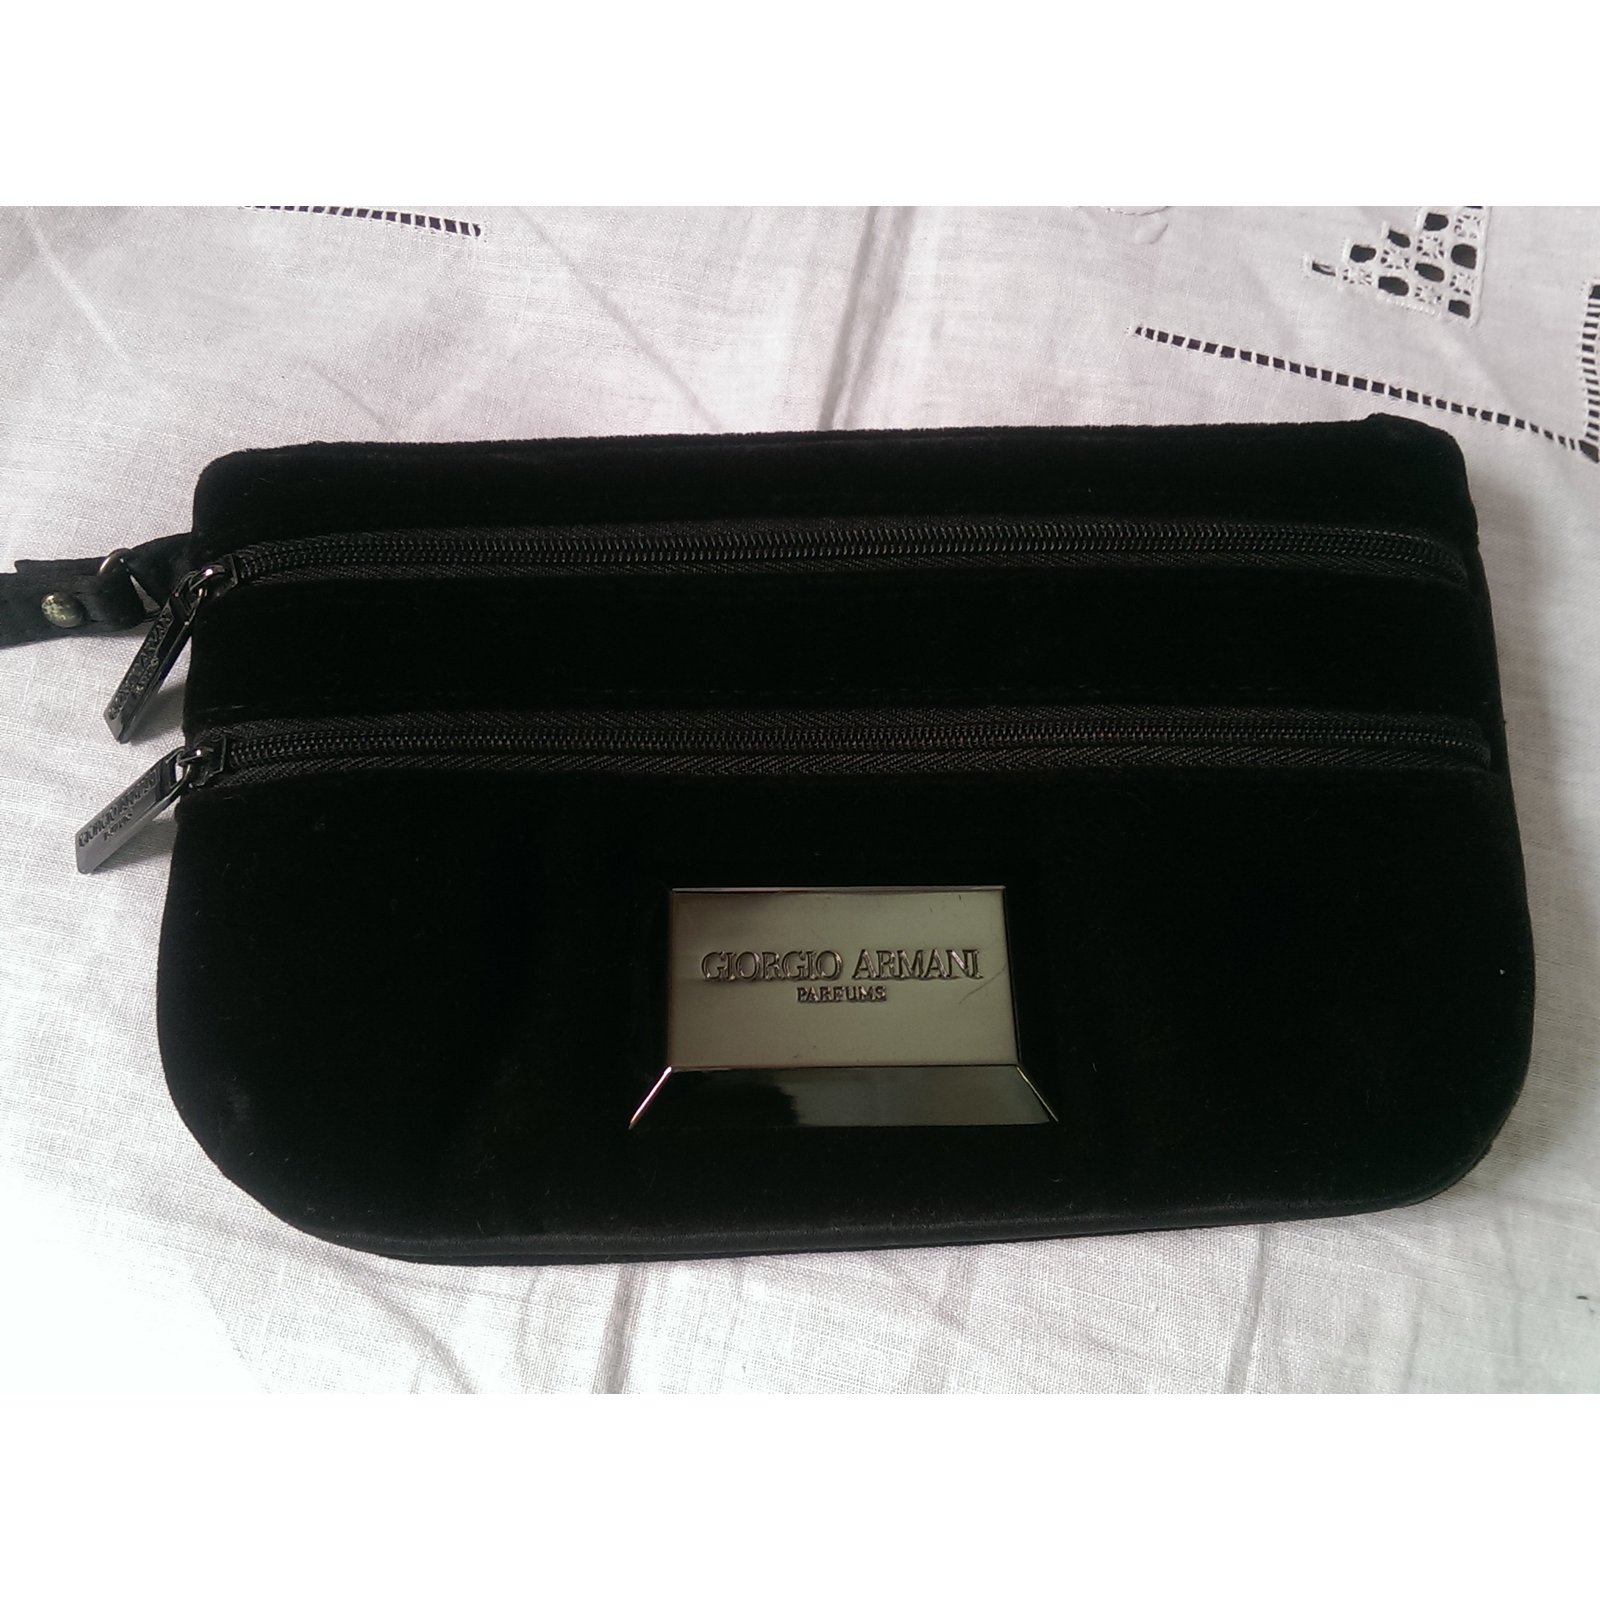 Armani Parfum Pochette Armani Parfum Parfum Pochette Armani Pochette Pochette Pochette Parfum Armani nkPO80wX